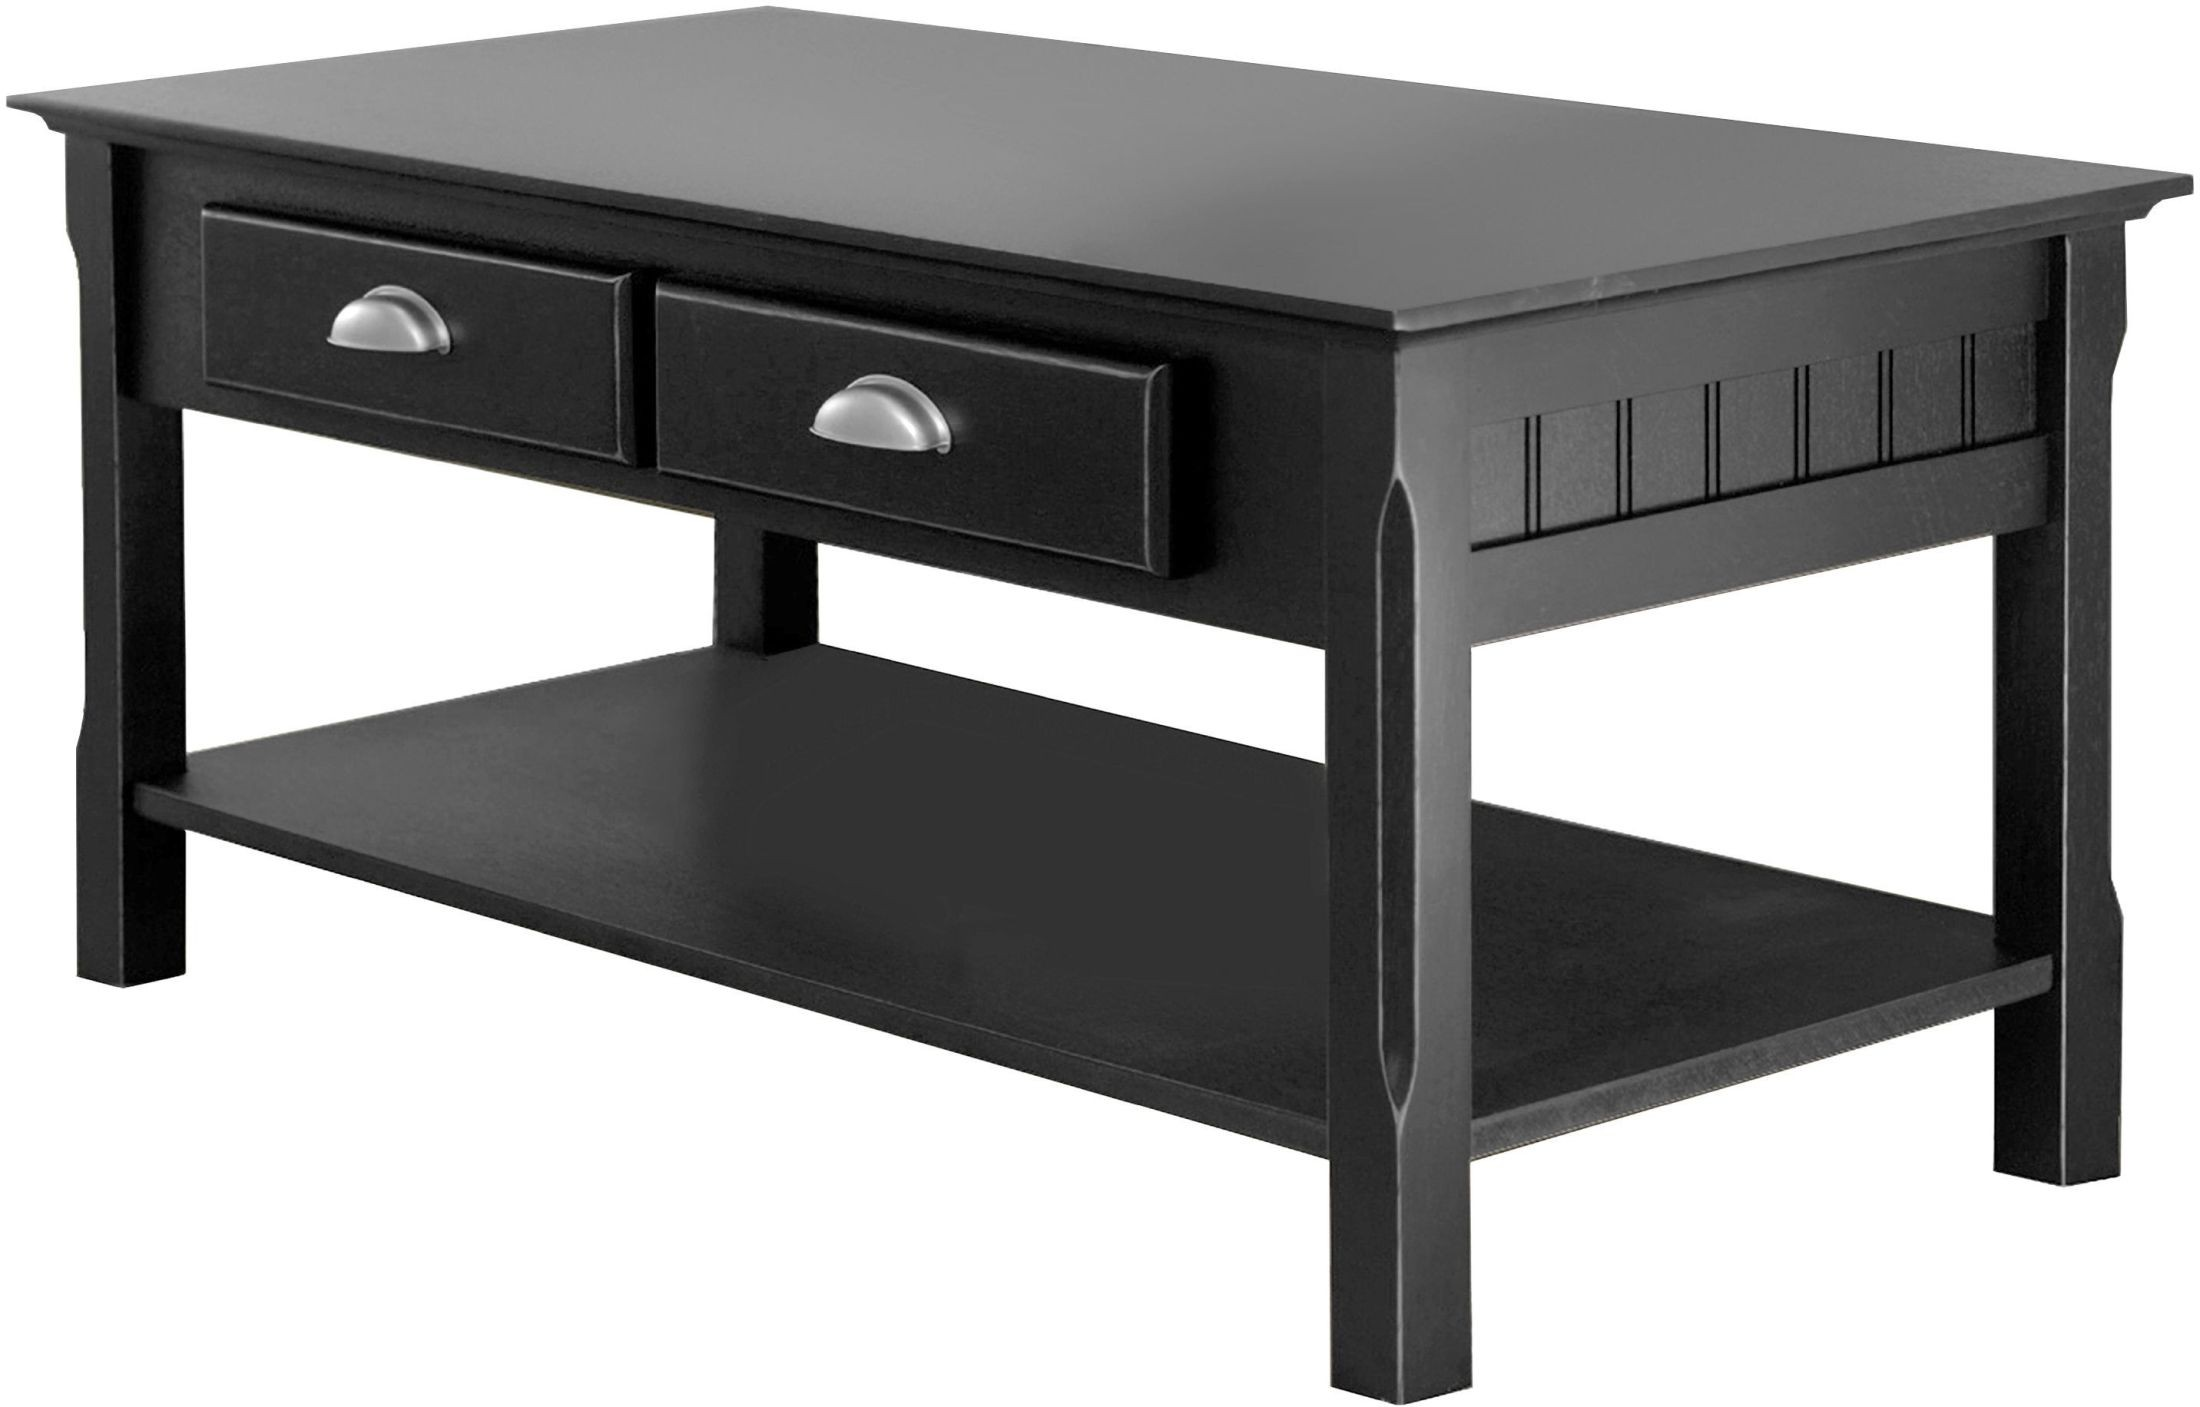 Timber Black 2 Drawer Coffee Table From Winsomewood Coleman Furniture